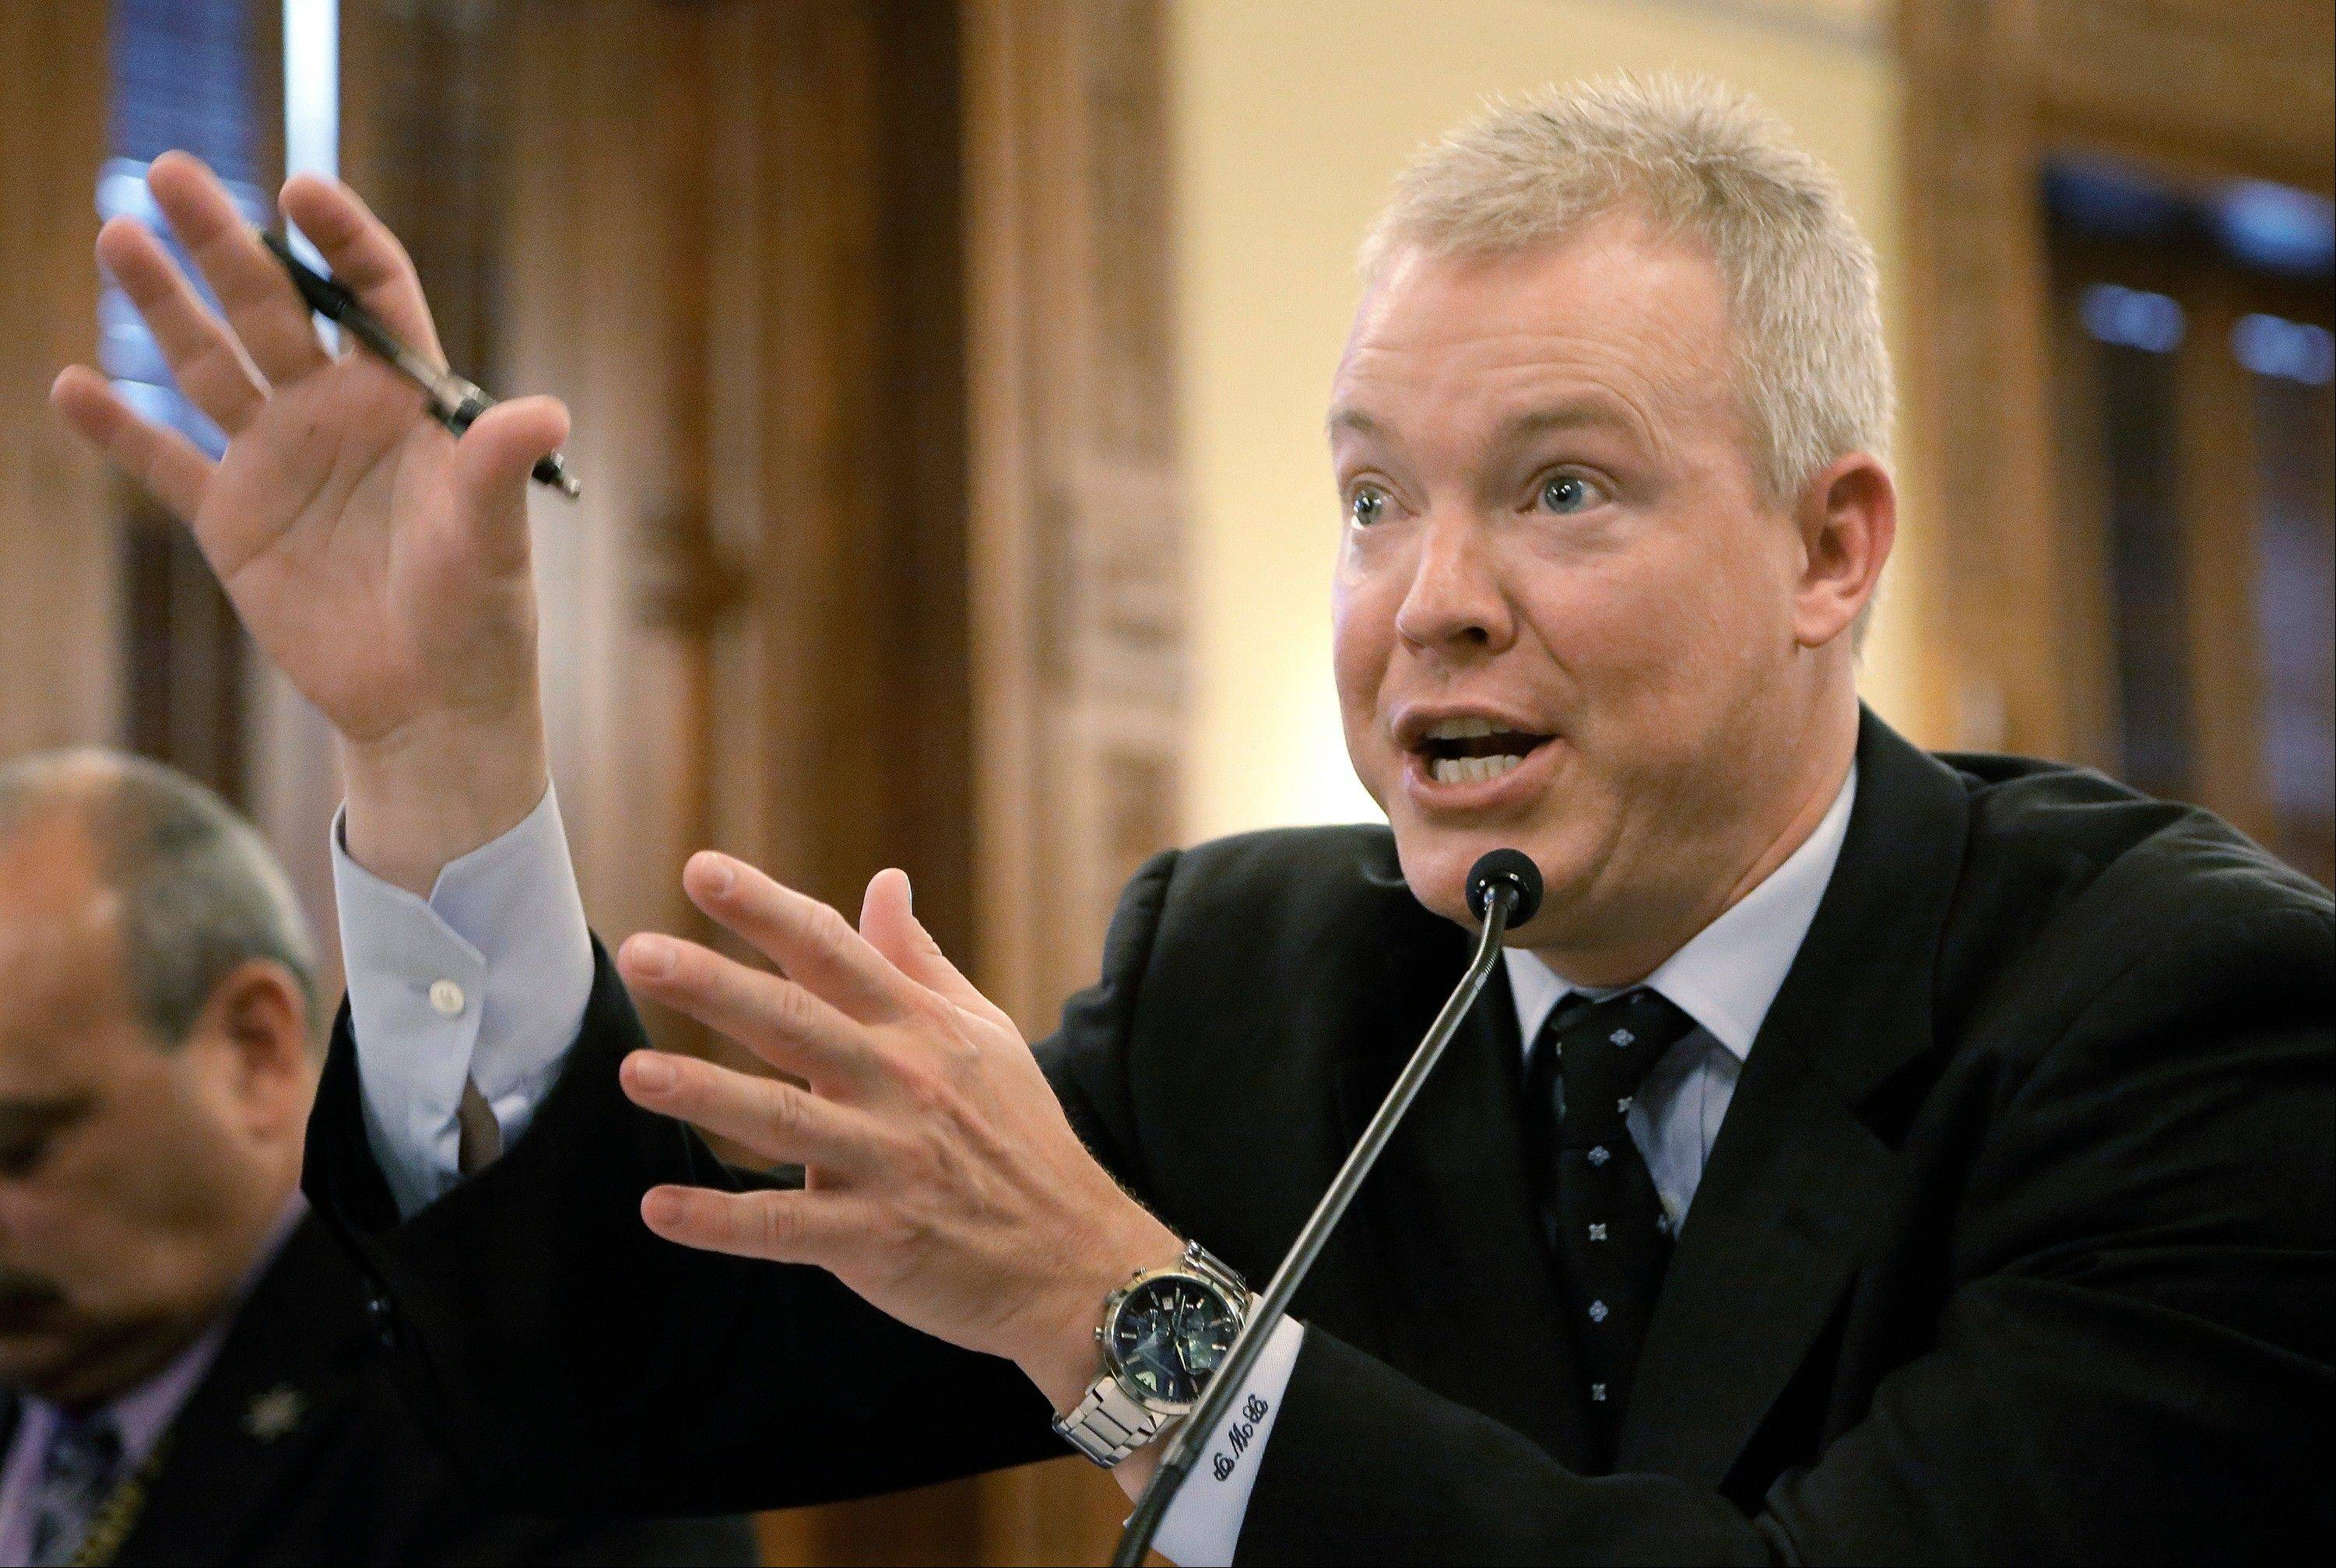 Illinois Rep. Brandon Phelps, D-Harrisburg, testifies during a House Committee hearing on concealed carry gun legislation at the Illinois State Capitol Thursday.